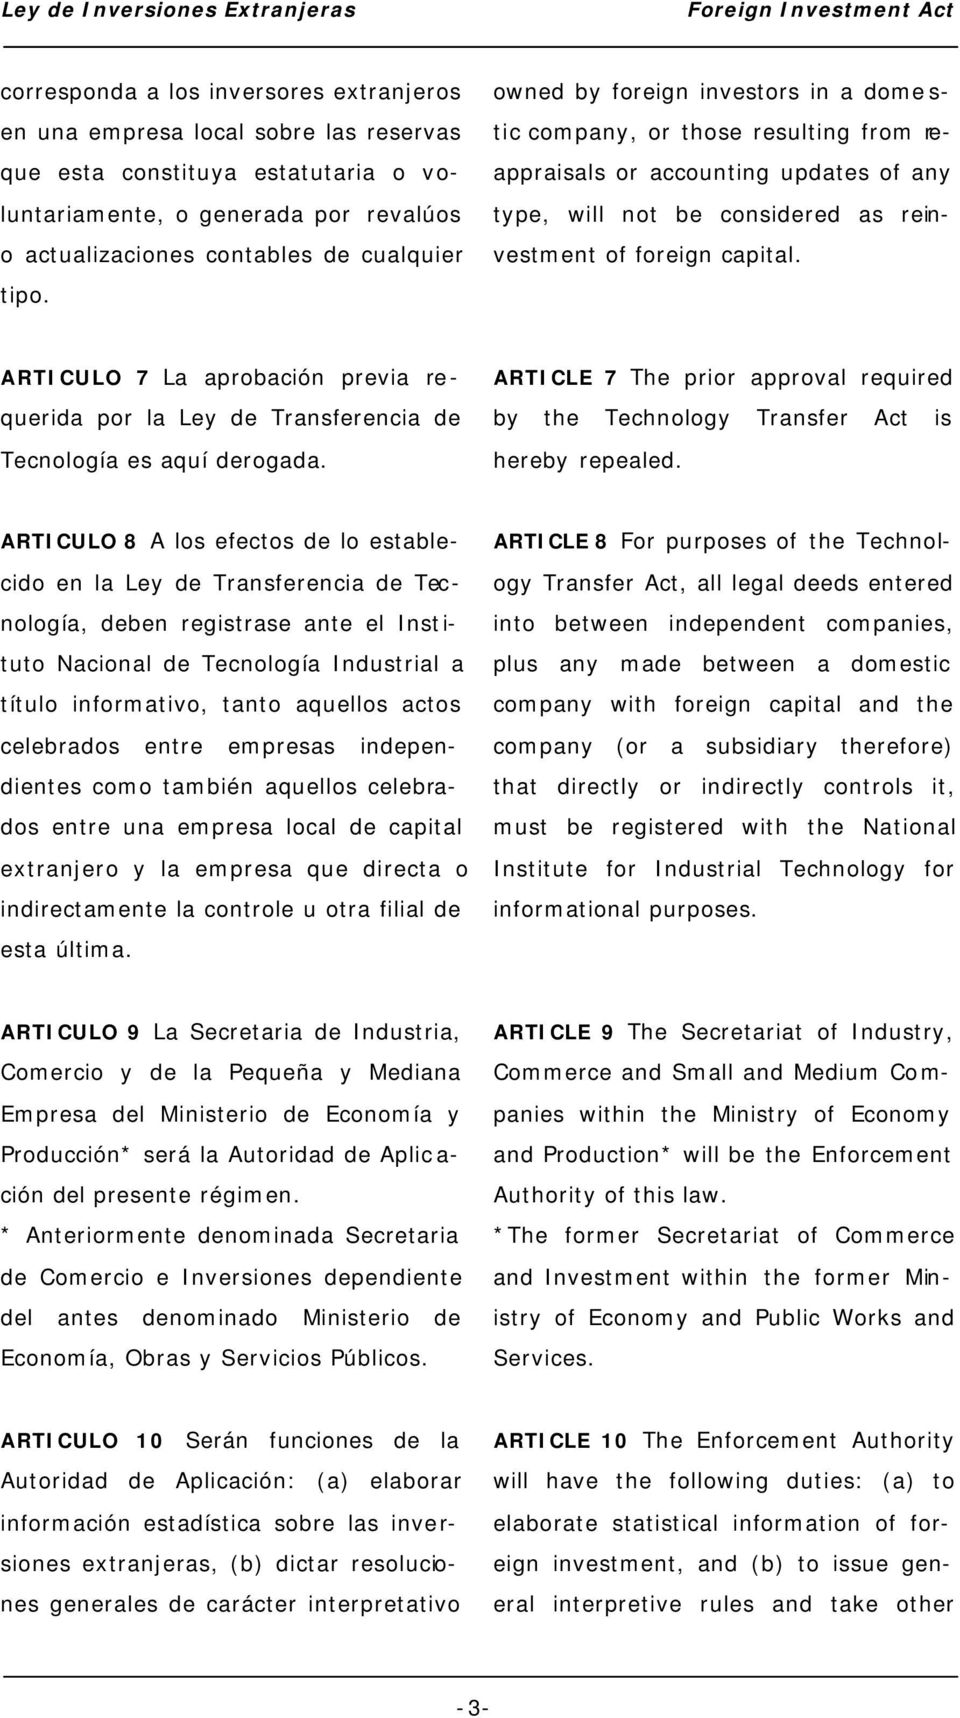 ARTICULO 7 La aprobación previa requerida por la Ley de Transferencia de Tecnología es aquí derogada. ARTICLE 7 The prior approval required by the Technology Transfer Act is hereby repealed.